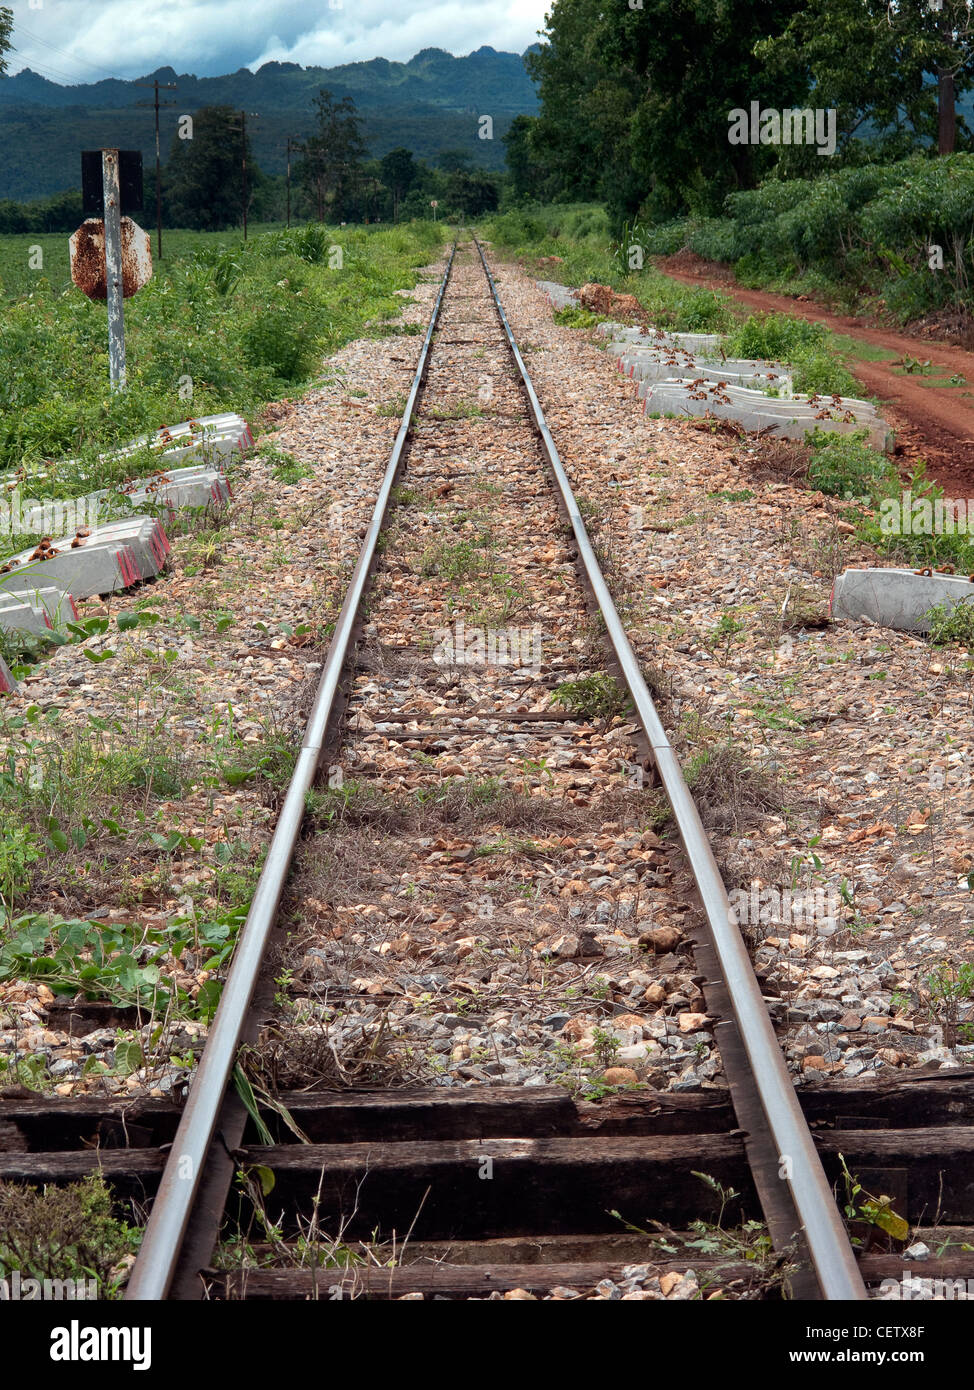 Thai Burma 'Death Railway'. Built by forced labour and allied POWs under appalling conditions. 1942-1943. - Stock Image